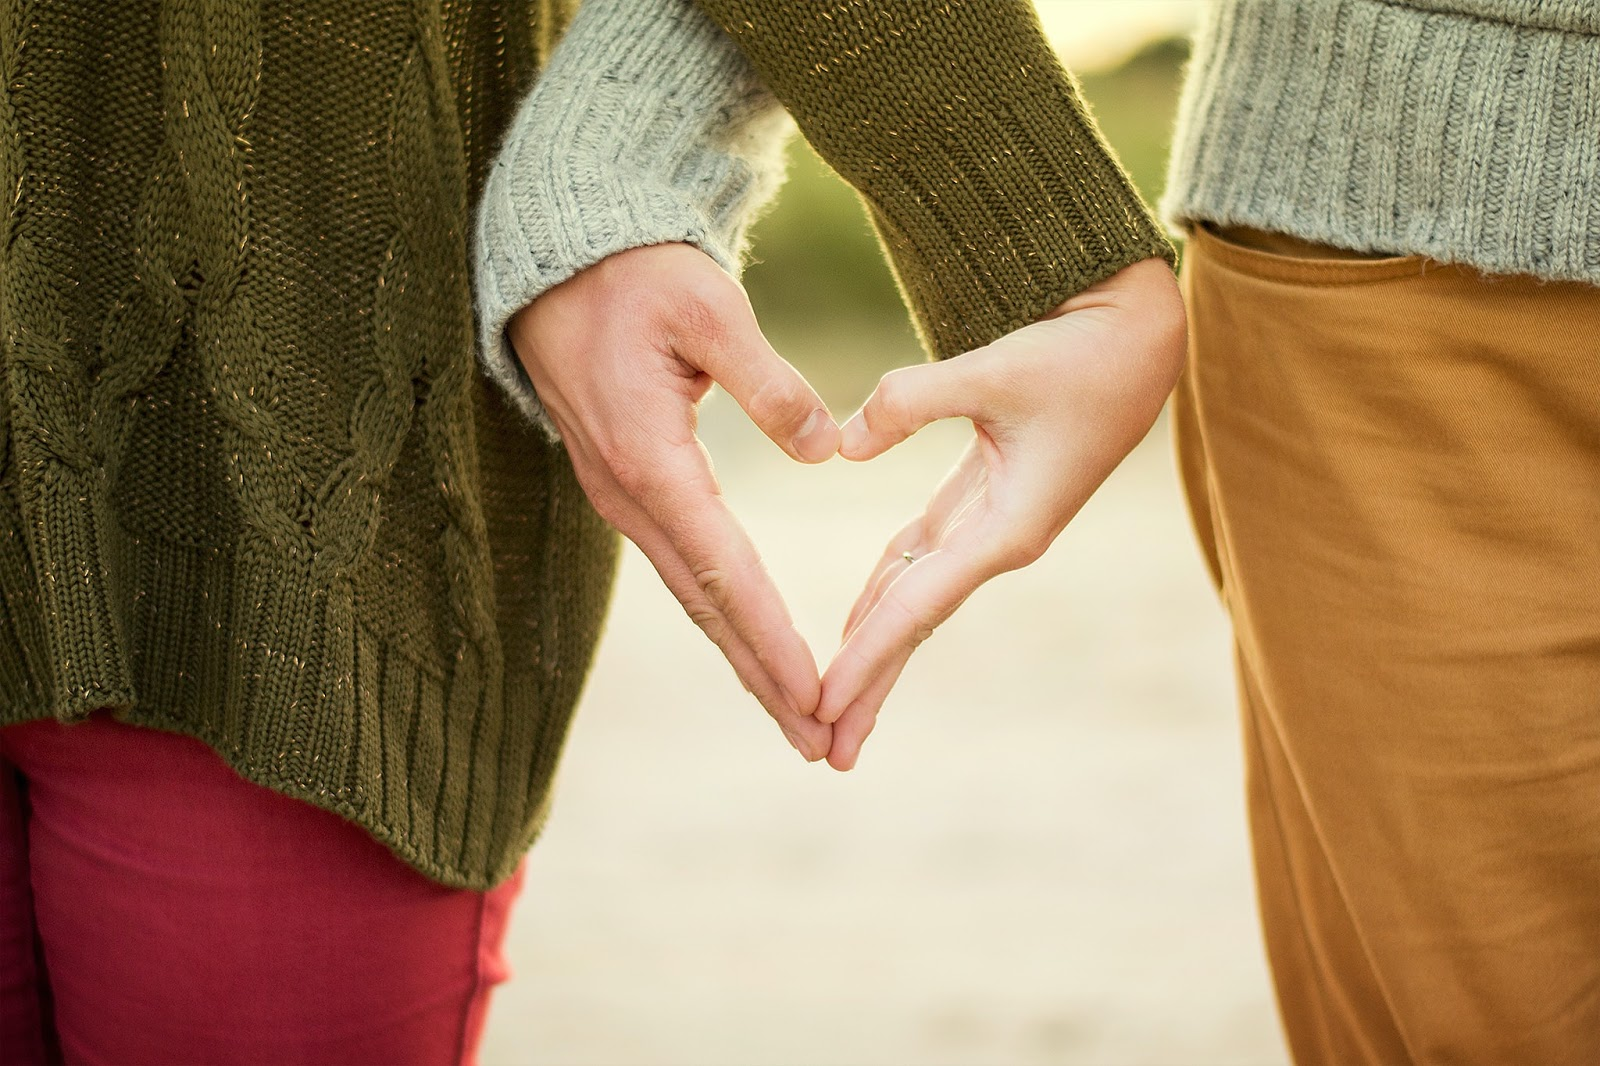 person forming heart shape with their hands,  love images